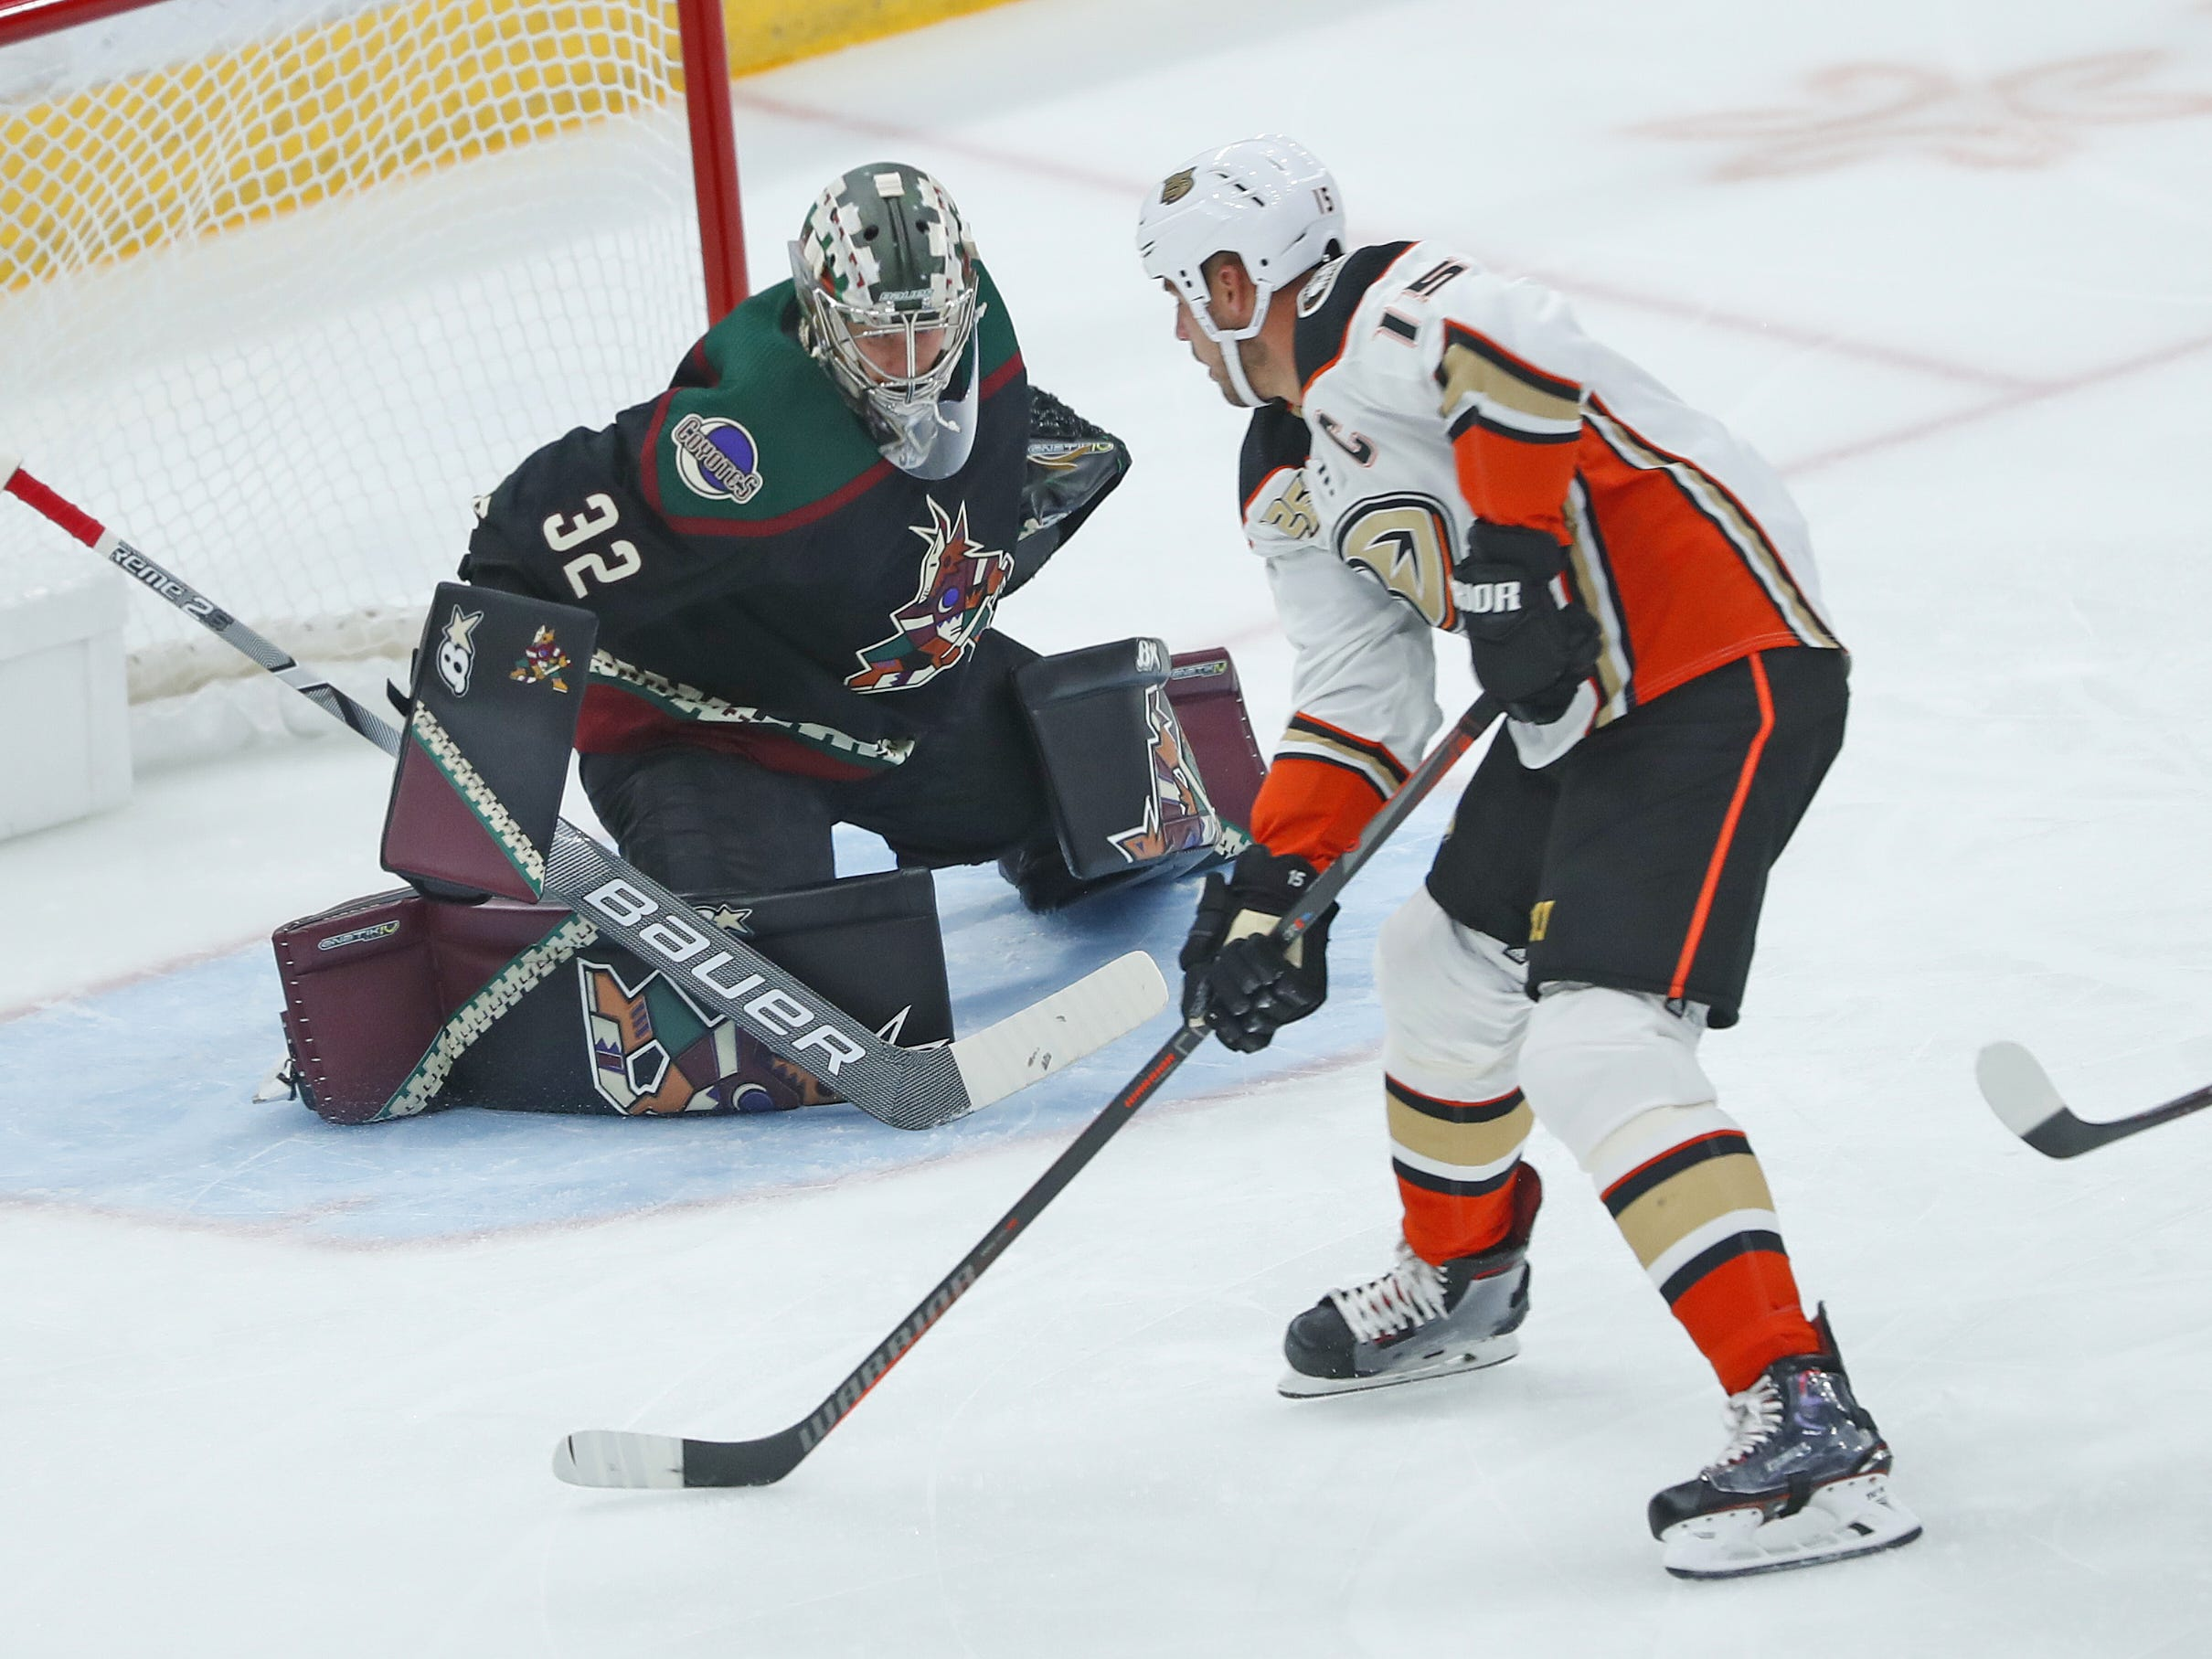 Coyotes Antii Raanta (32) makes a save on a shot from Ducks Ryan Getzlaf (15) during the first period at Gila River Arena in Glendale, Ariz. on October 6, 2018.